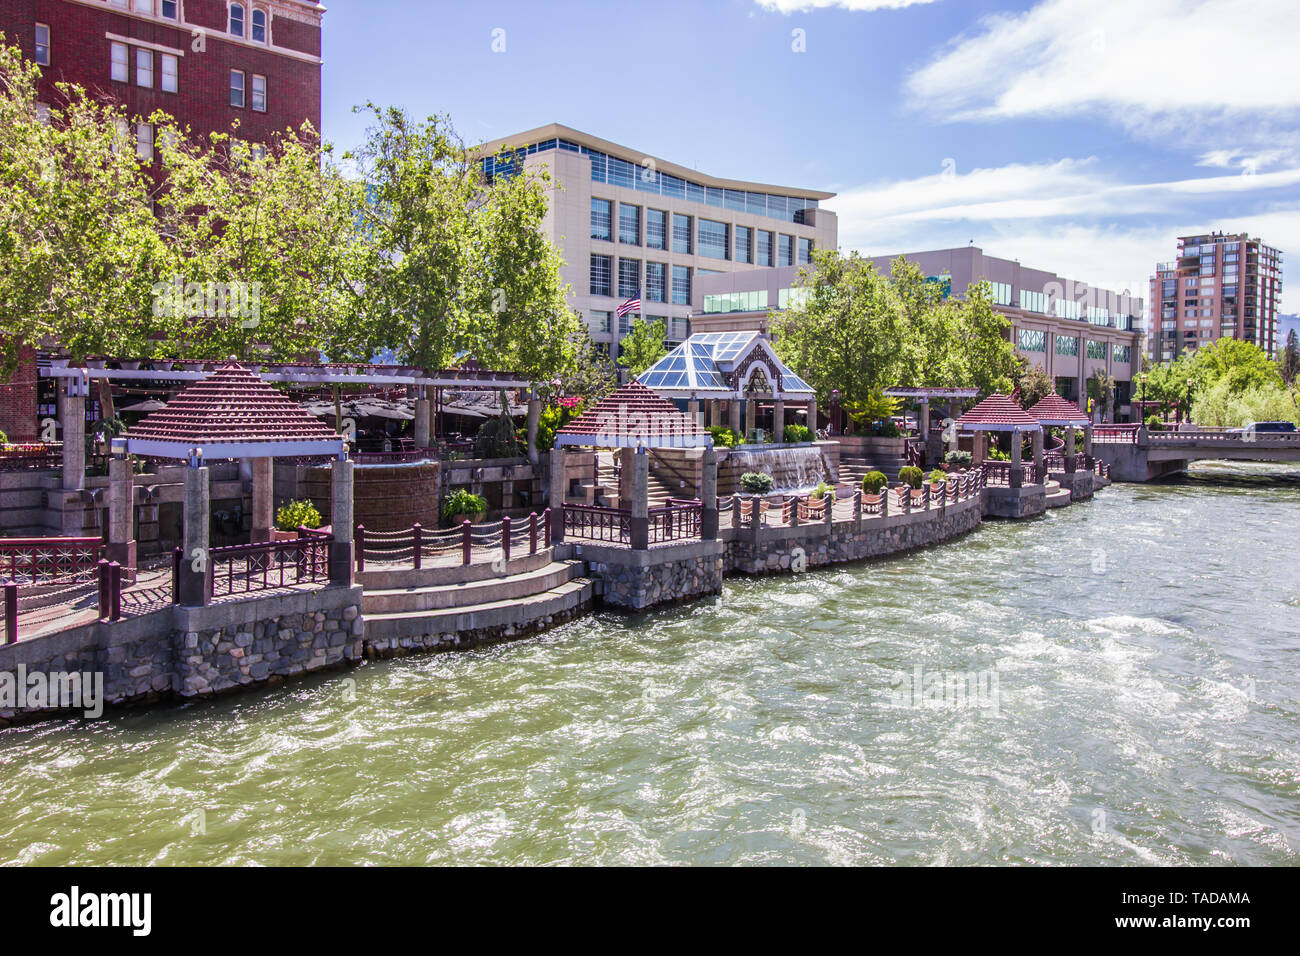 Modern Pavilions Along Truckee River Walk In Reno - Stock Image